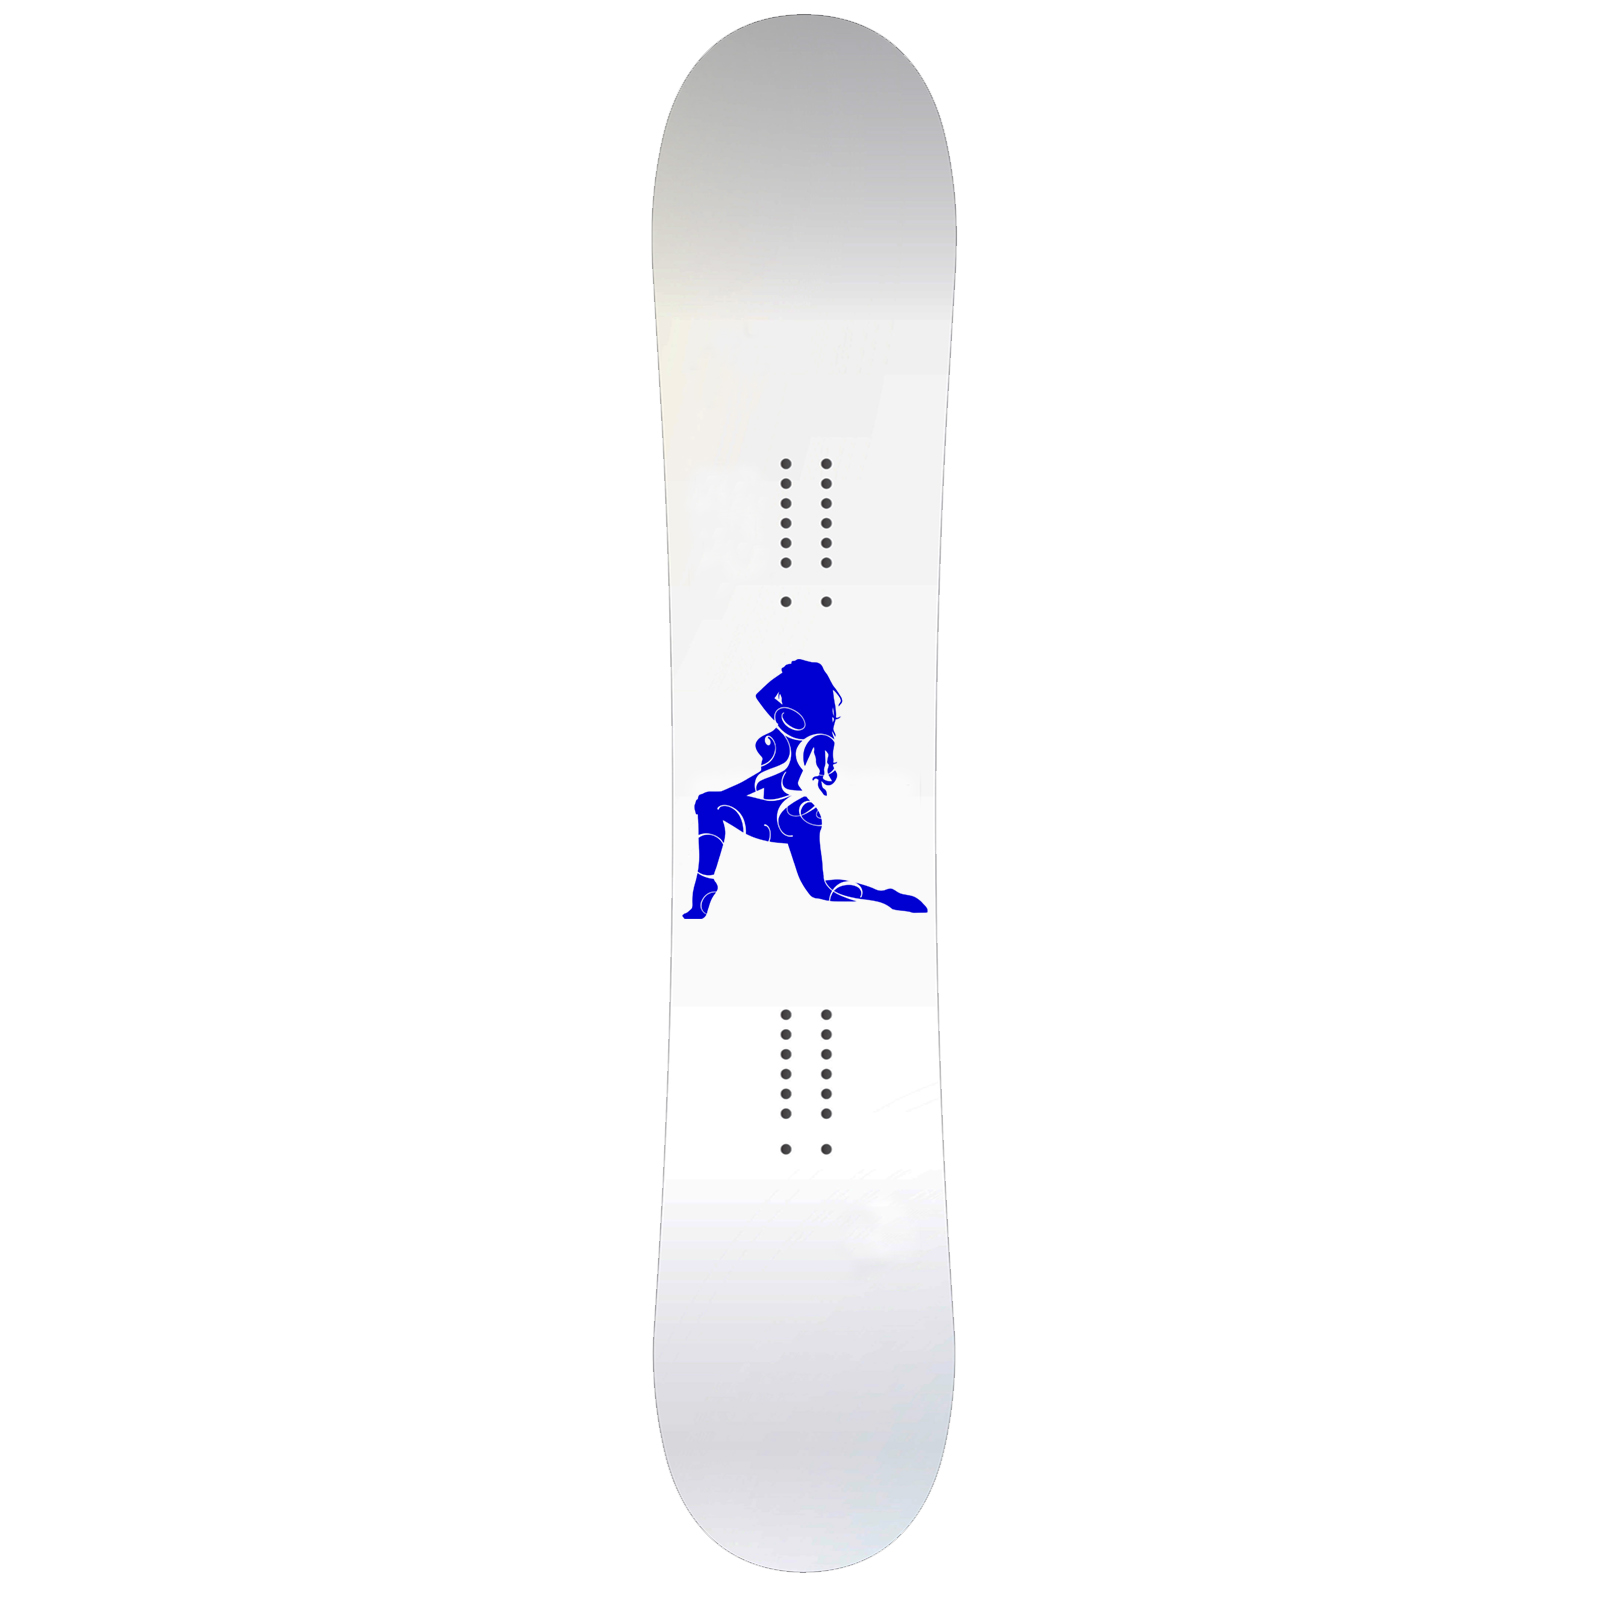 Sexy Swirls Girl Snowboard Sticker All Weather Vinyl Decal